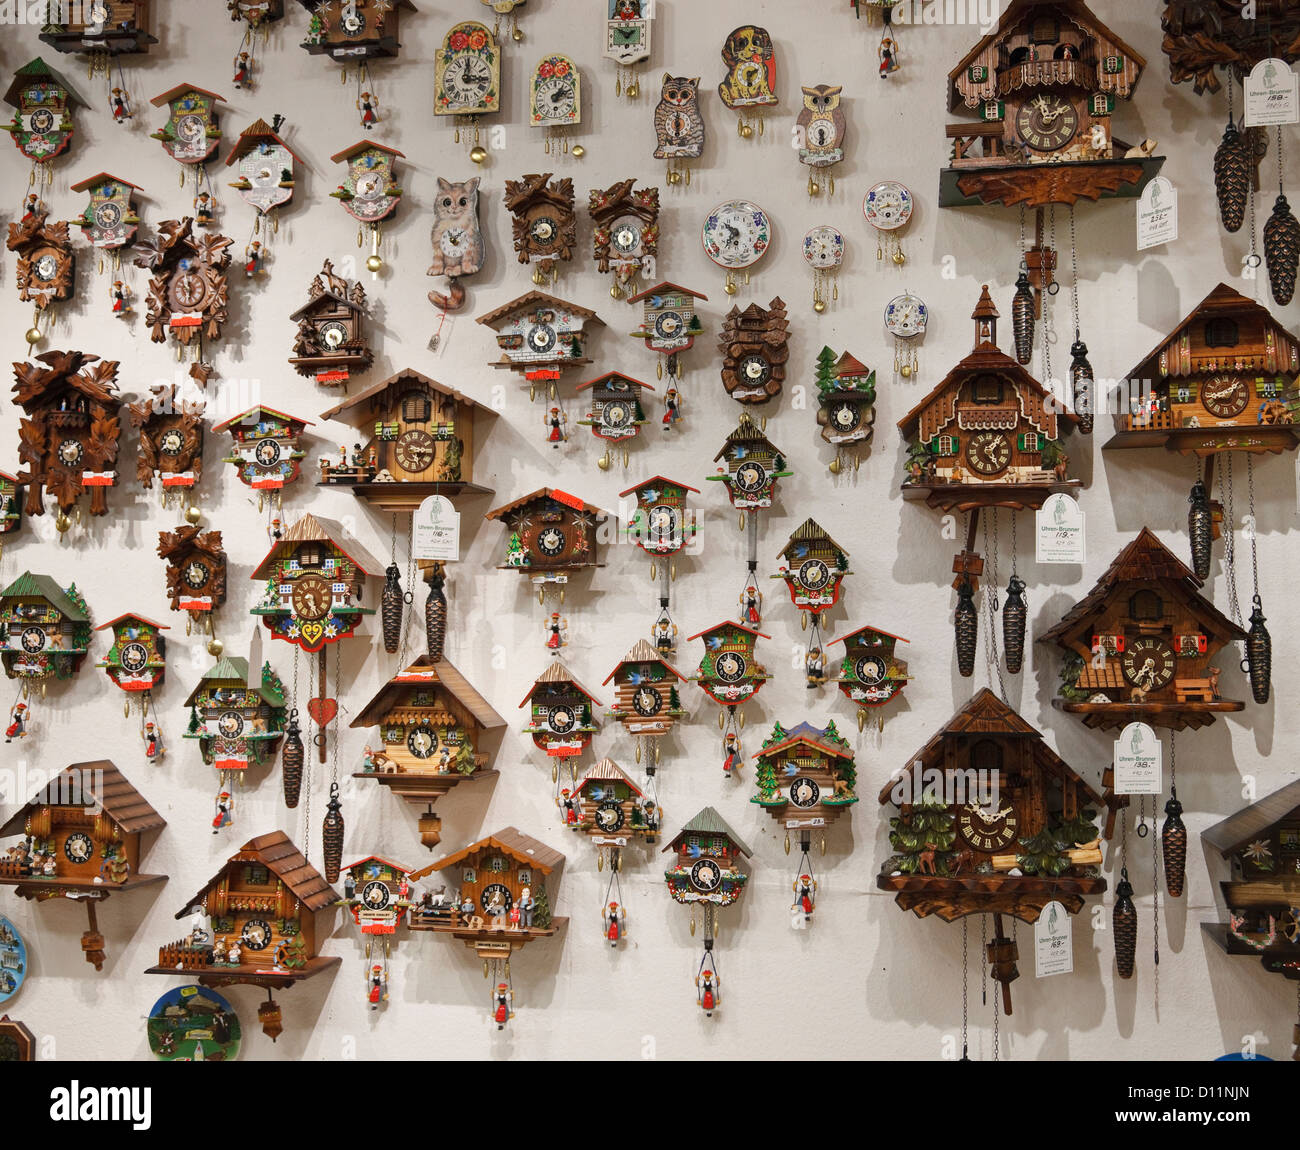 stock photo wall display of cuckoo clocks for sale inside a souvenir shop in germany